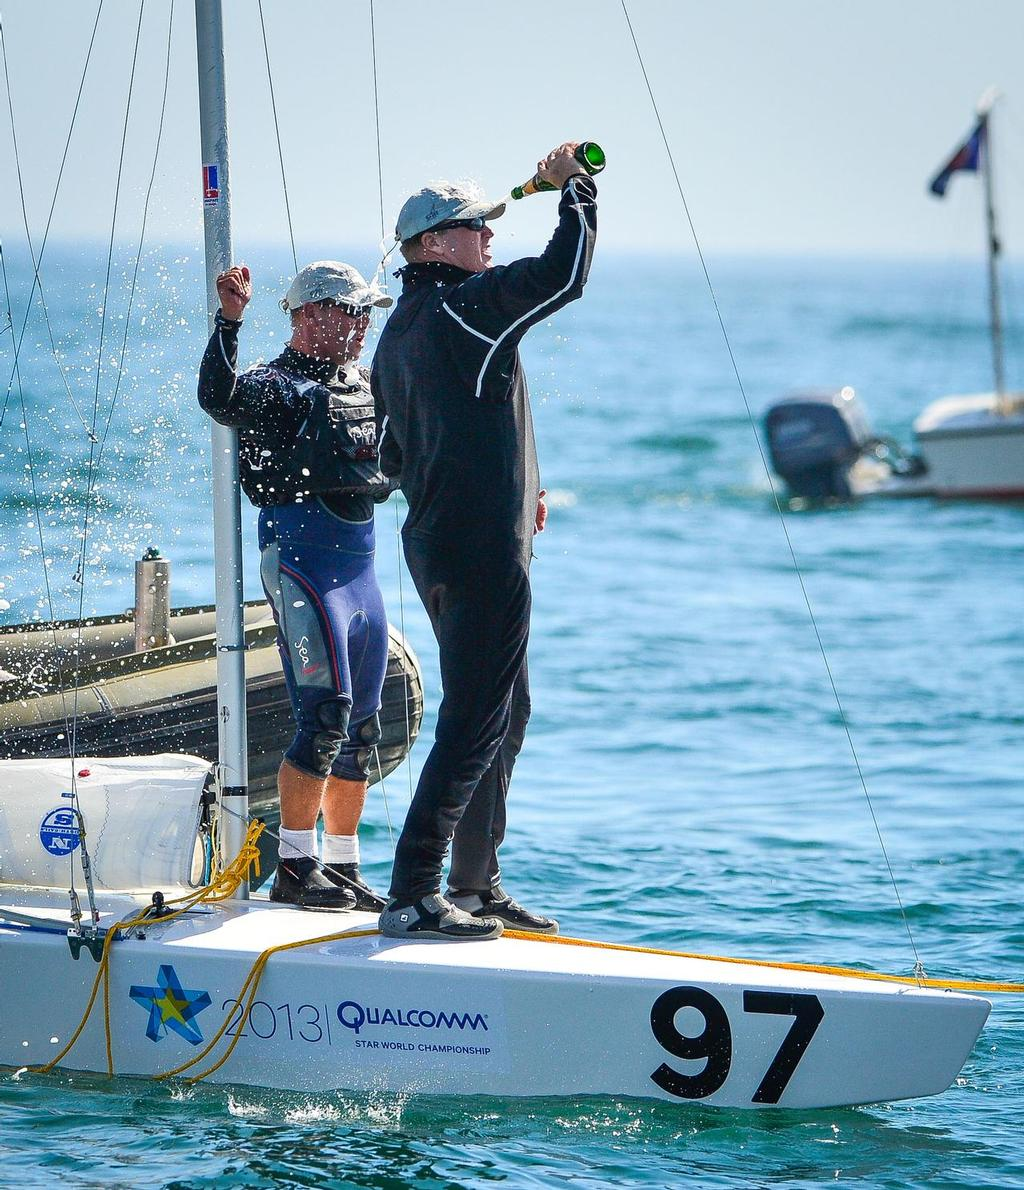 John MacCausland and Phil Trinter celebrate at the 2013 Qualcomm Star World Championship,San Diego Yacht Club - Day 6<br />  &copy;  Marc Rouiller/StarWorlds2013